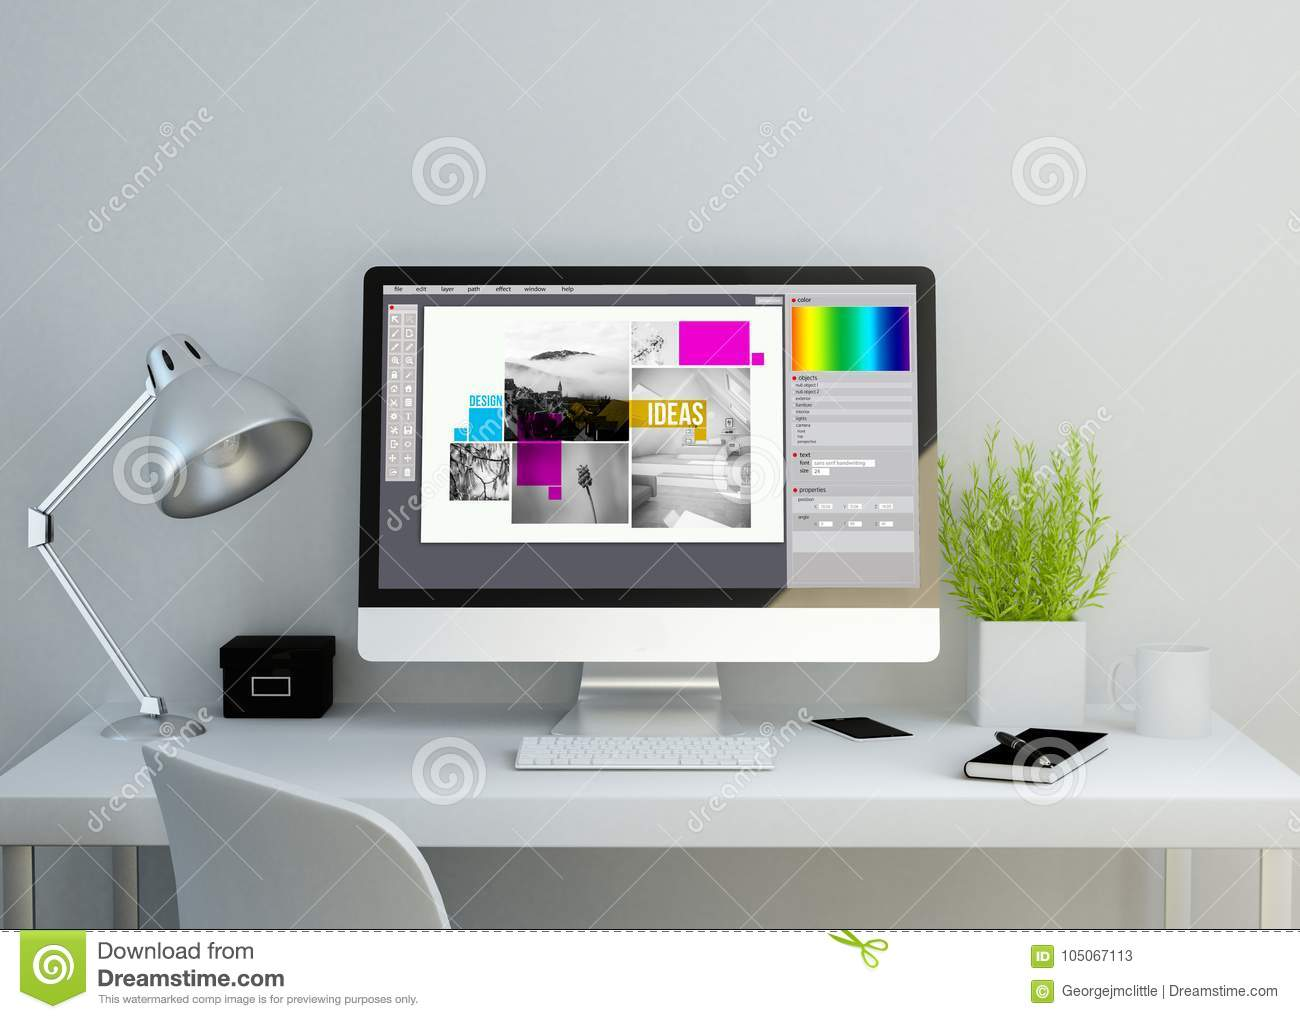 Best Kitchen Gallery: Modern Clean Workspace With Graphic Design Software On Screen Stock of Graphic Design Workspace  on rachelxblog.com